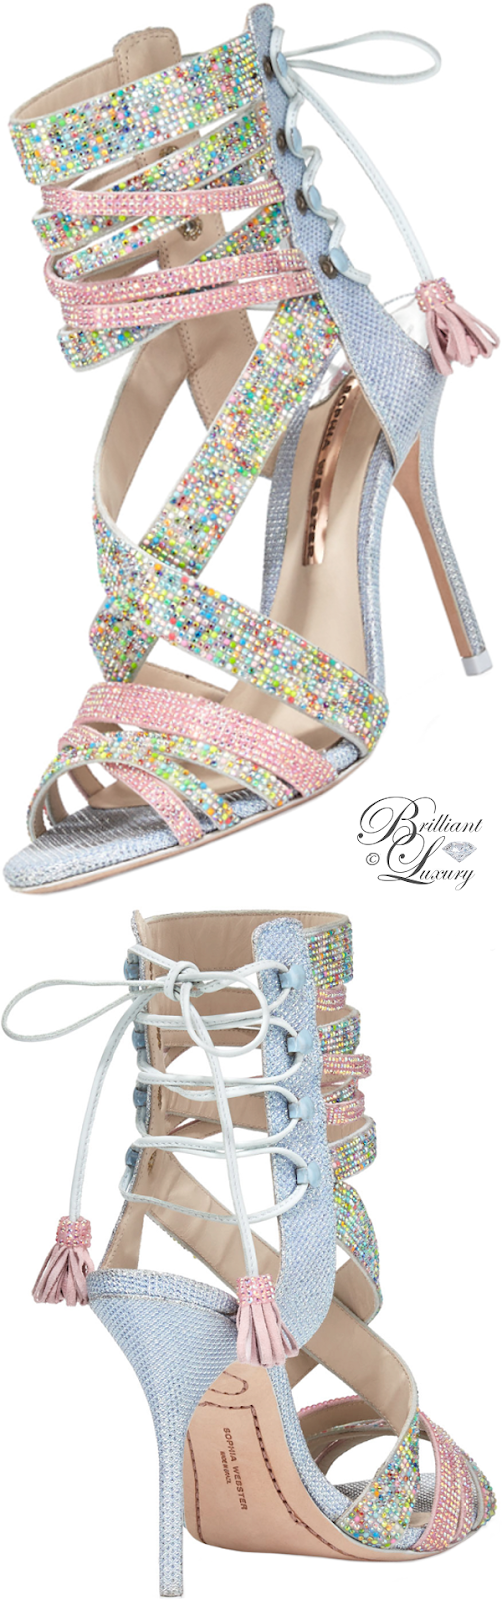 Brilliant Luxury ♦ Sophia Webster Adeline dreamy crystal lace-up sandal